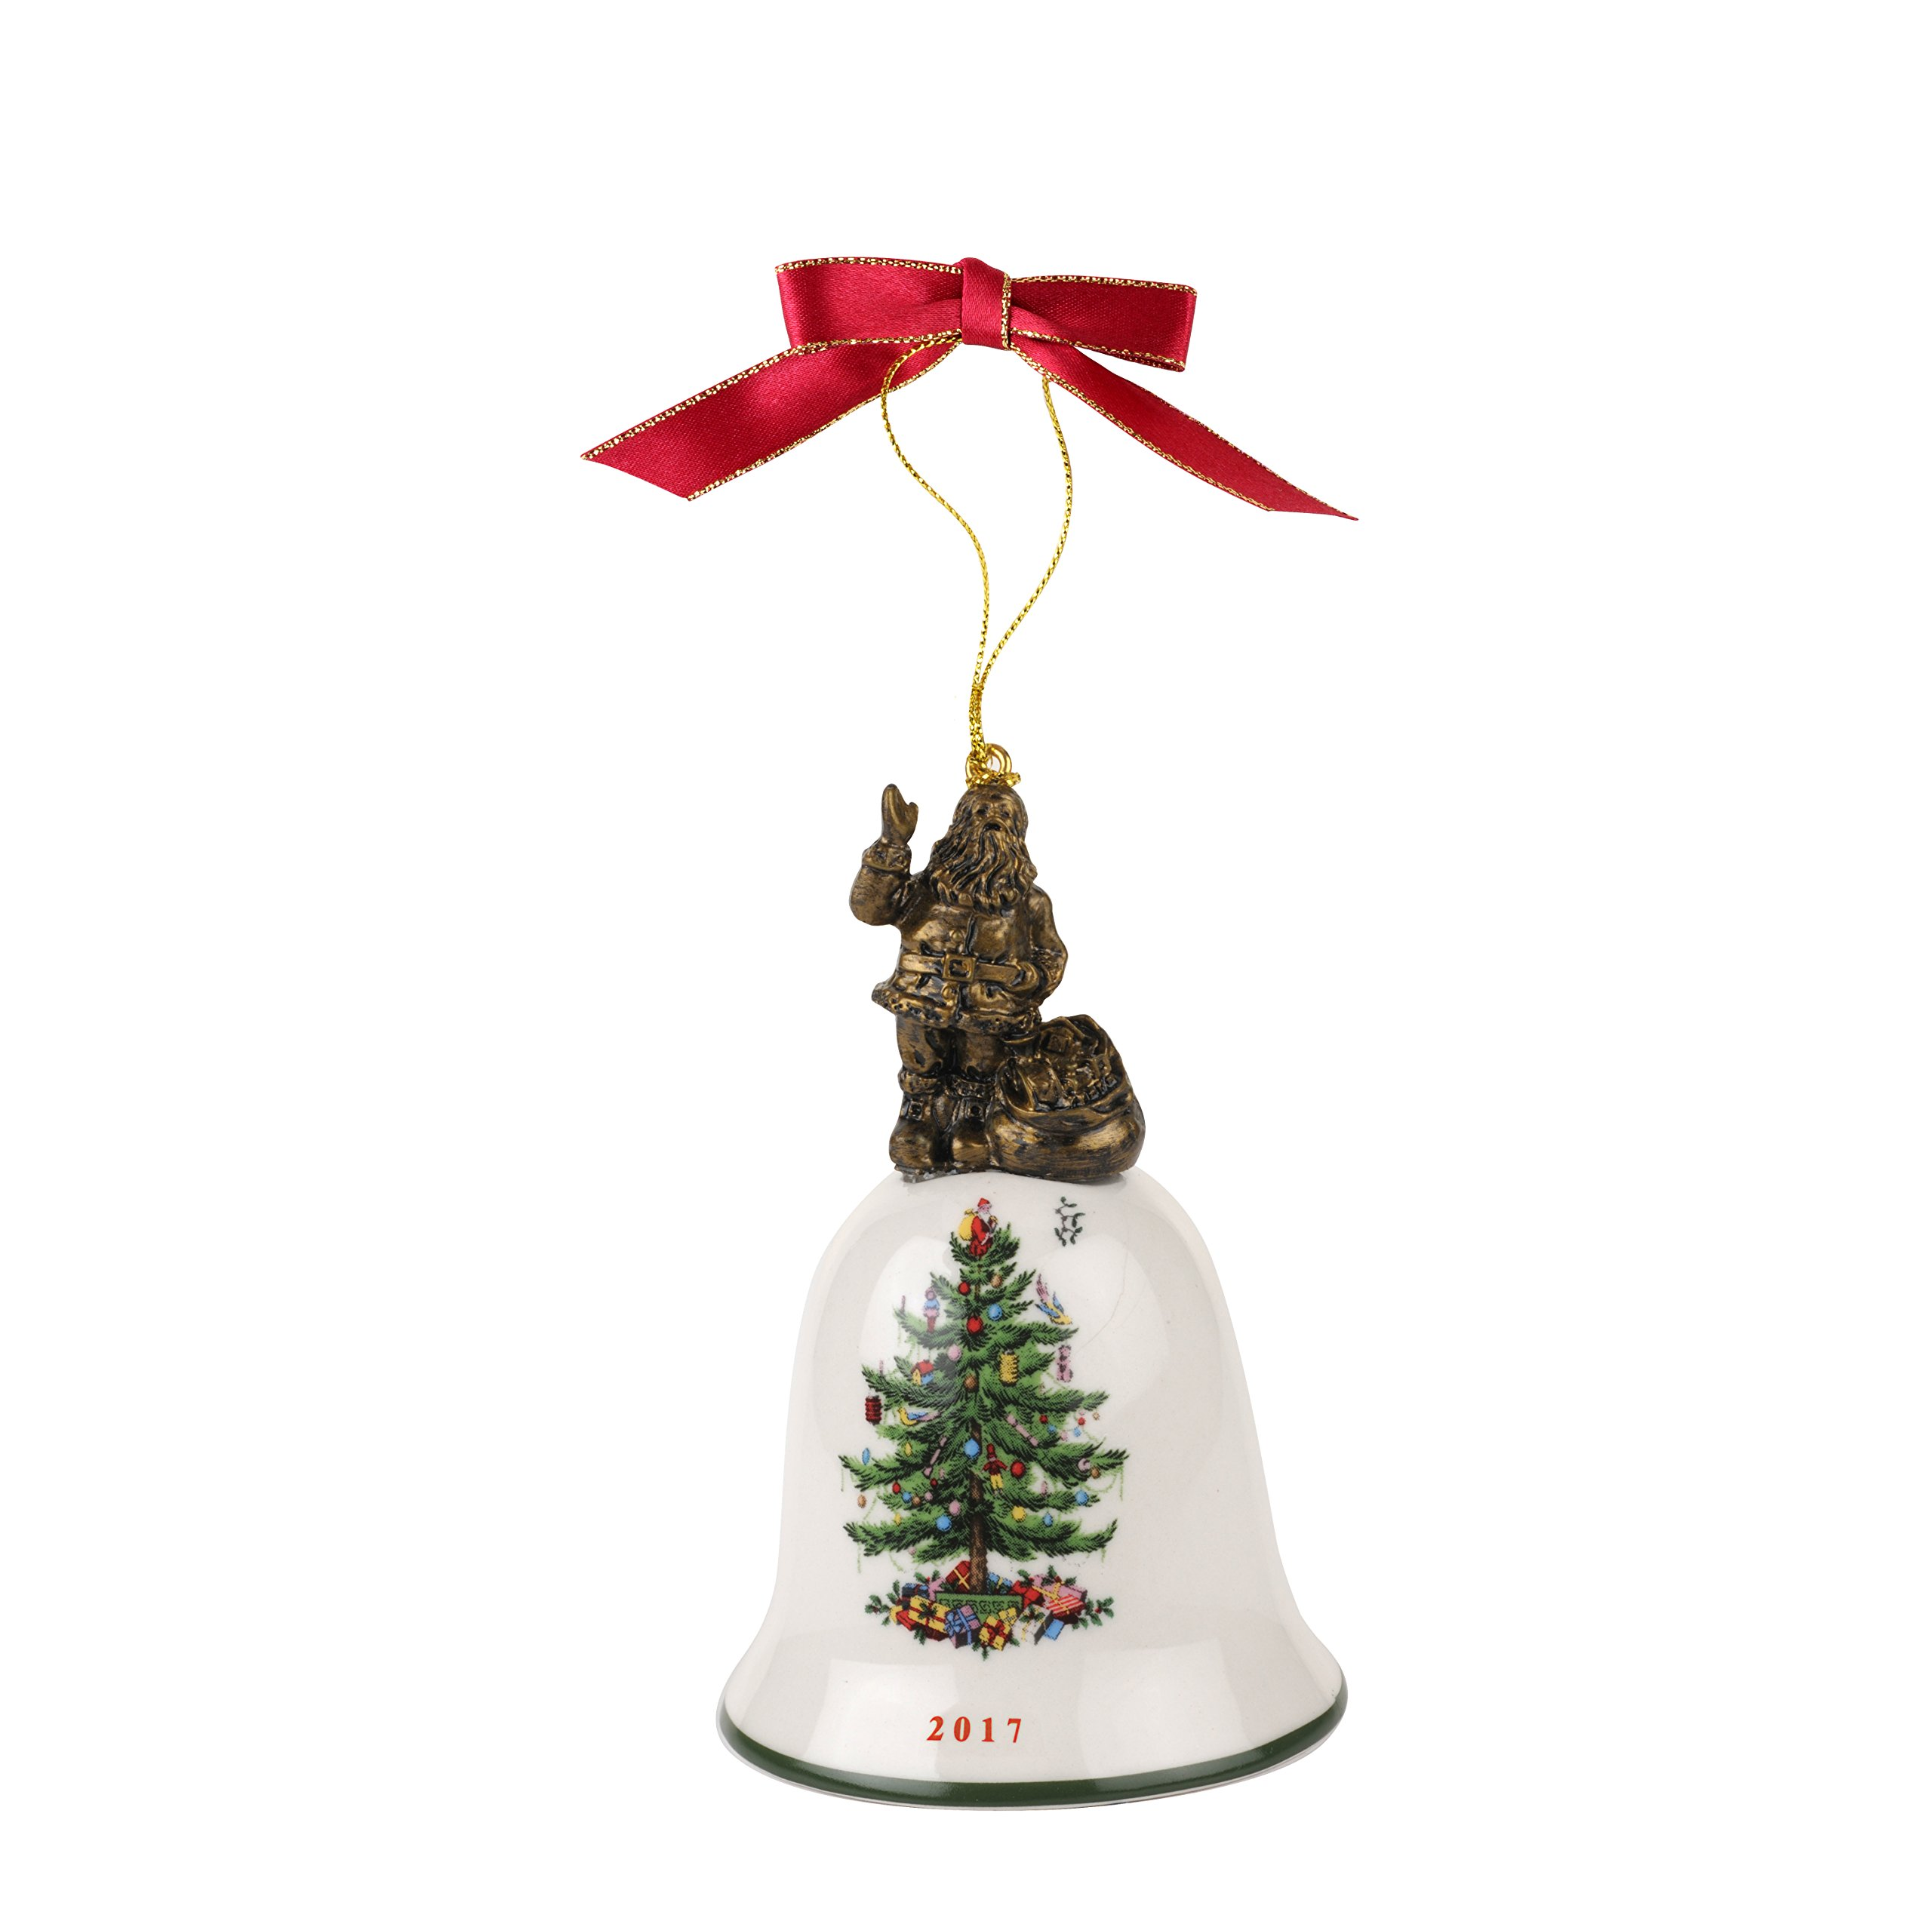 Spode Christmas Tree Annual Edition Ornament, Santa on Bell